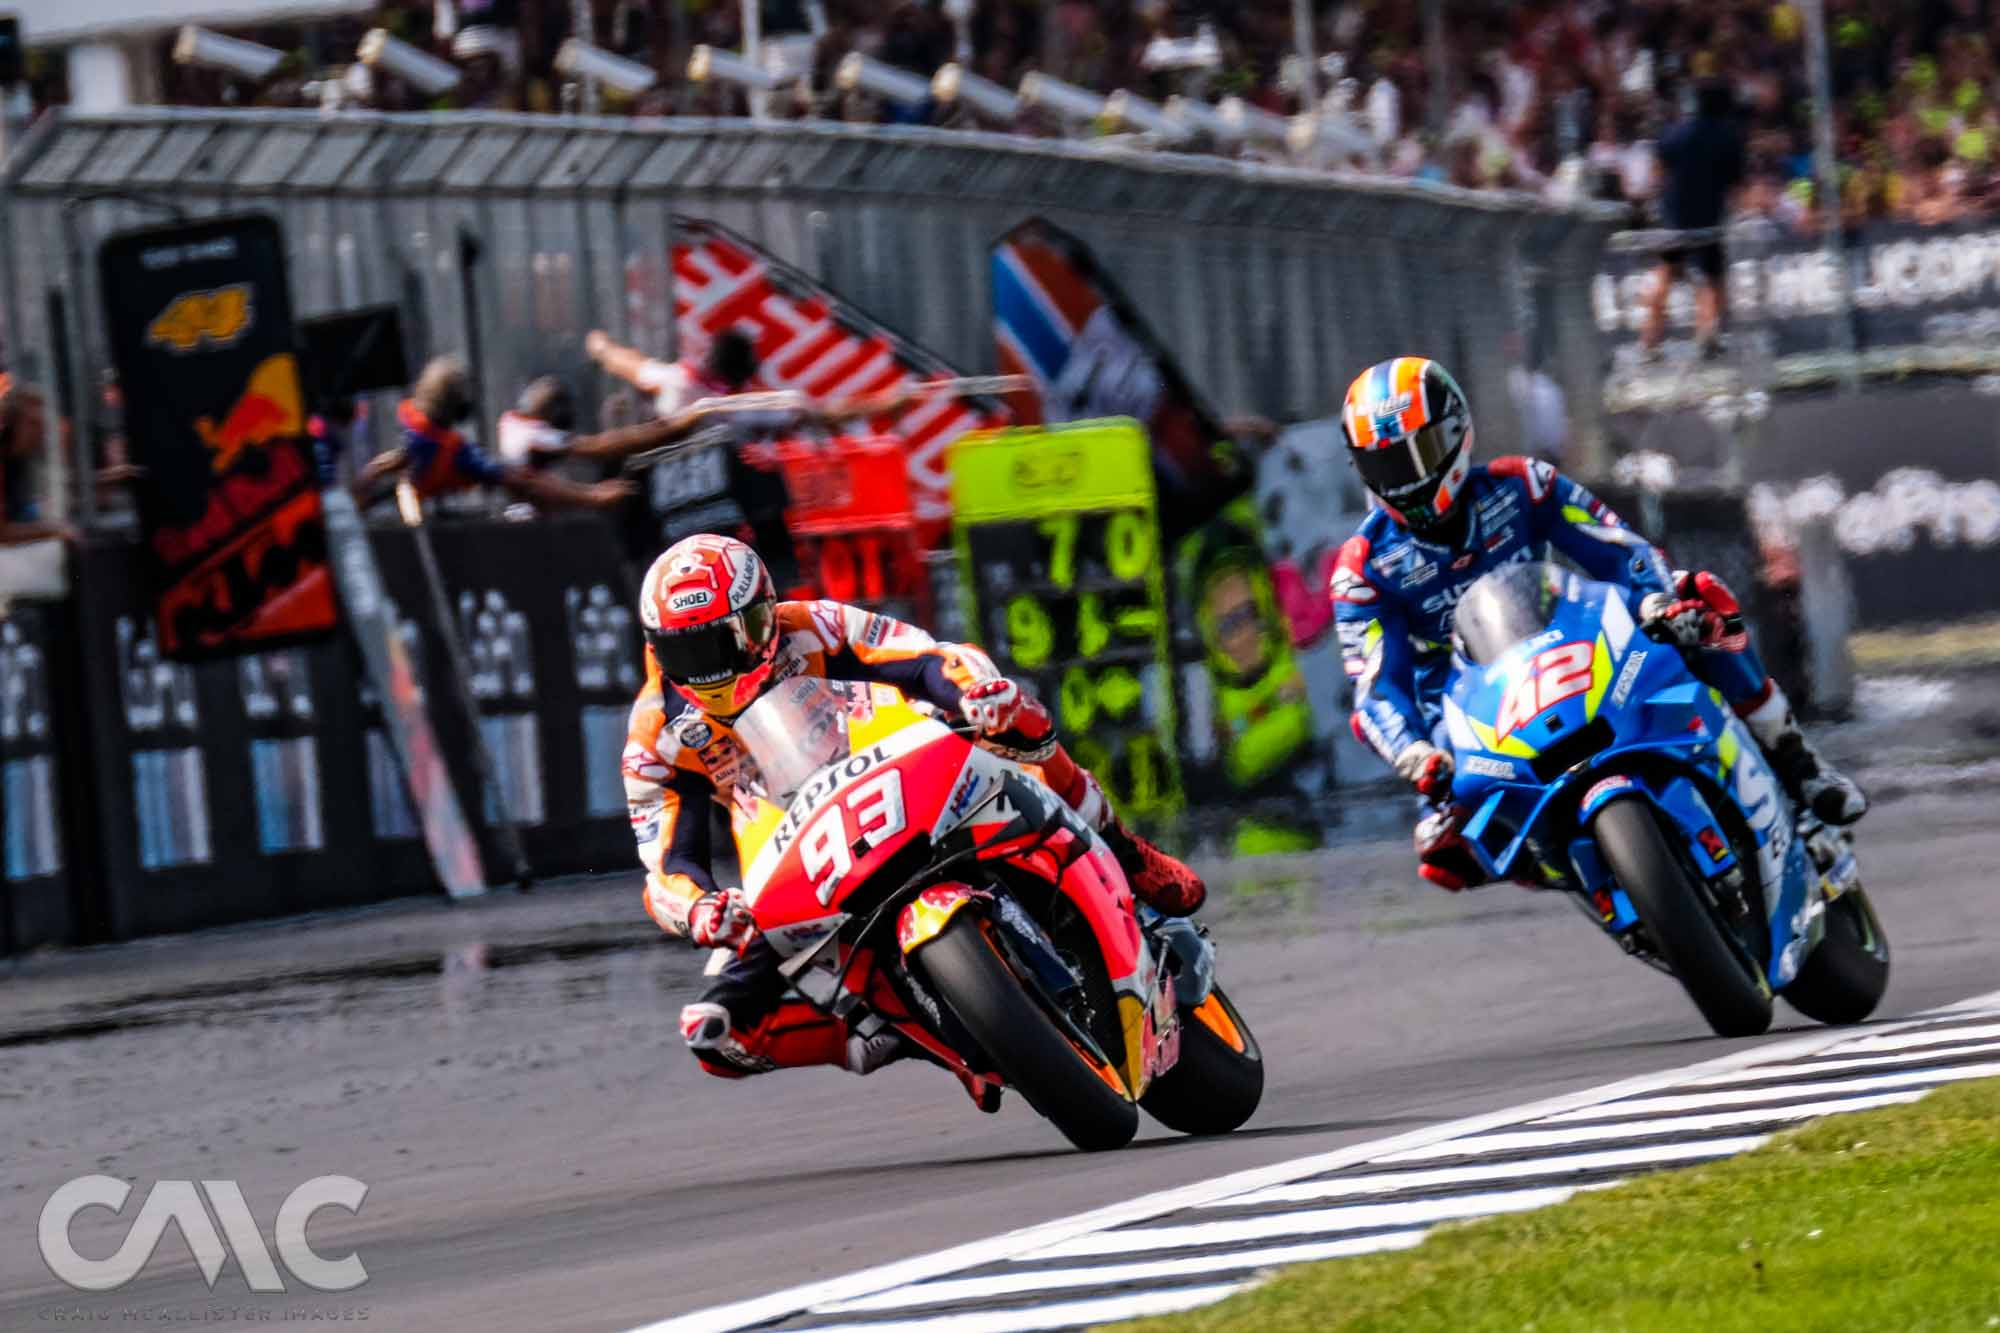 CMC_MotoGP_Qualifying_Race_100-4009588.jpg